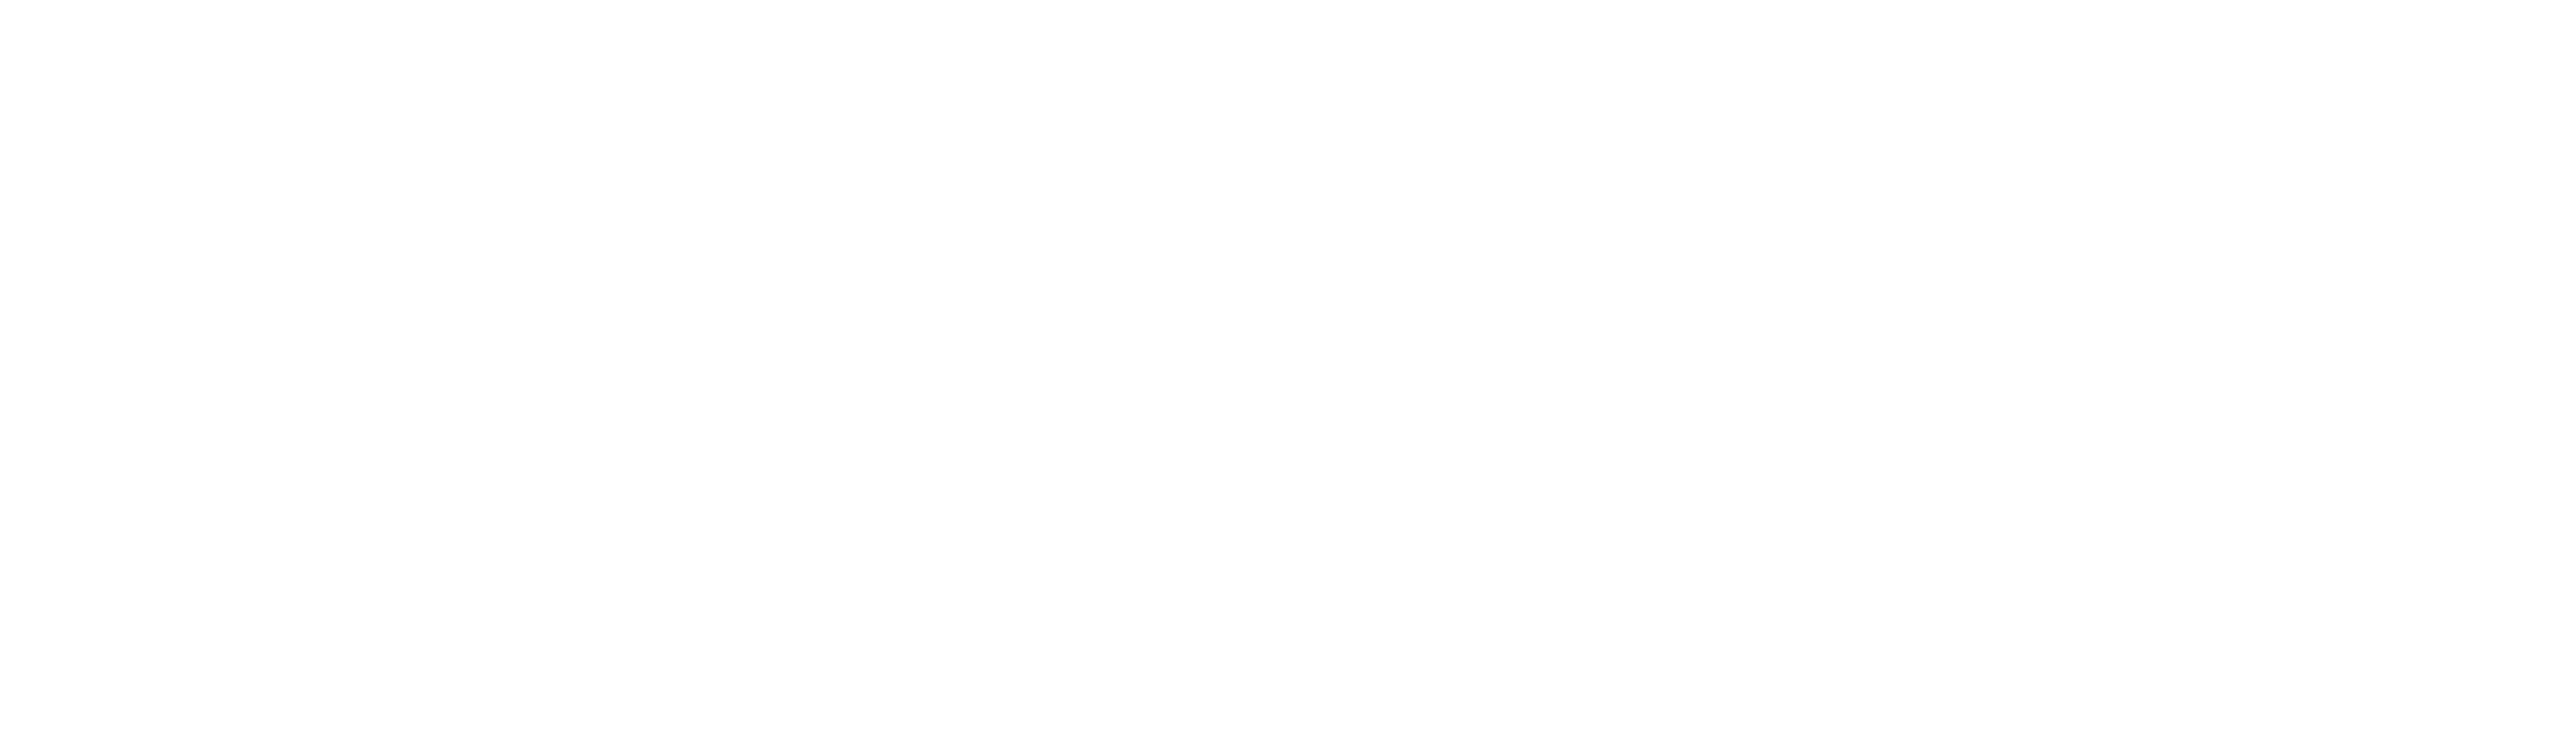 East London Pub Company